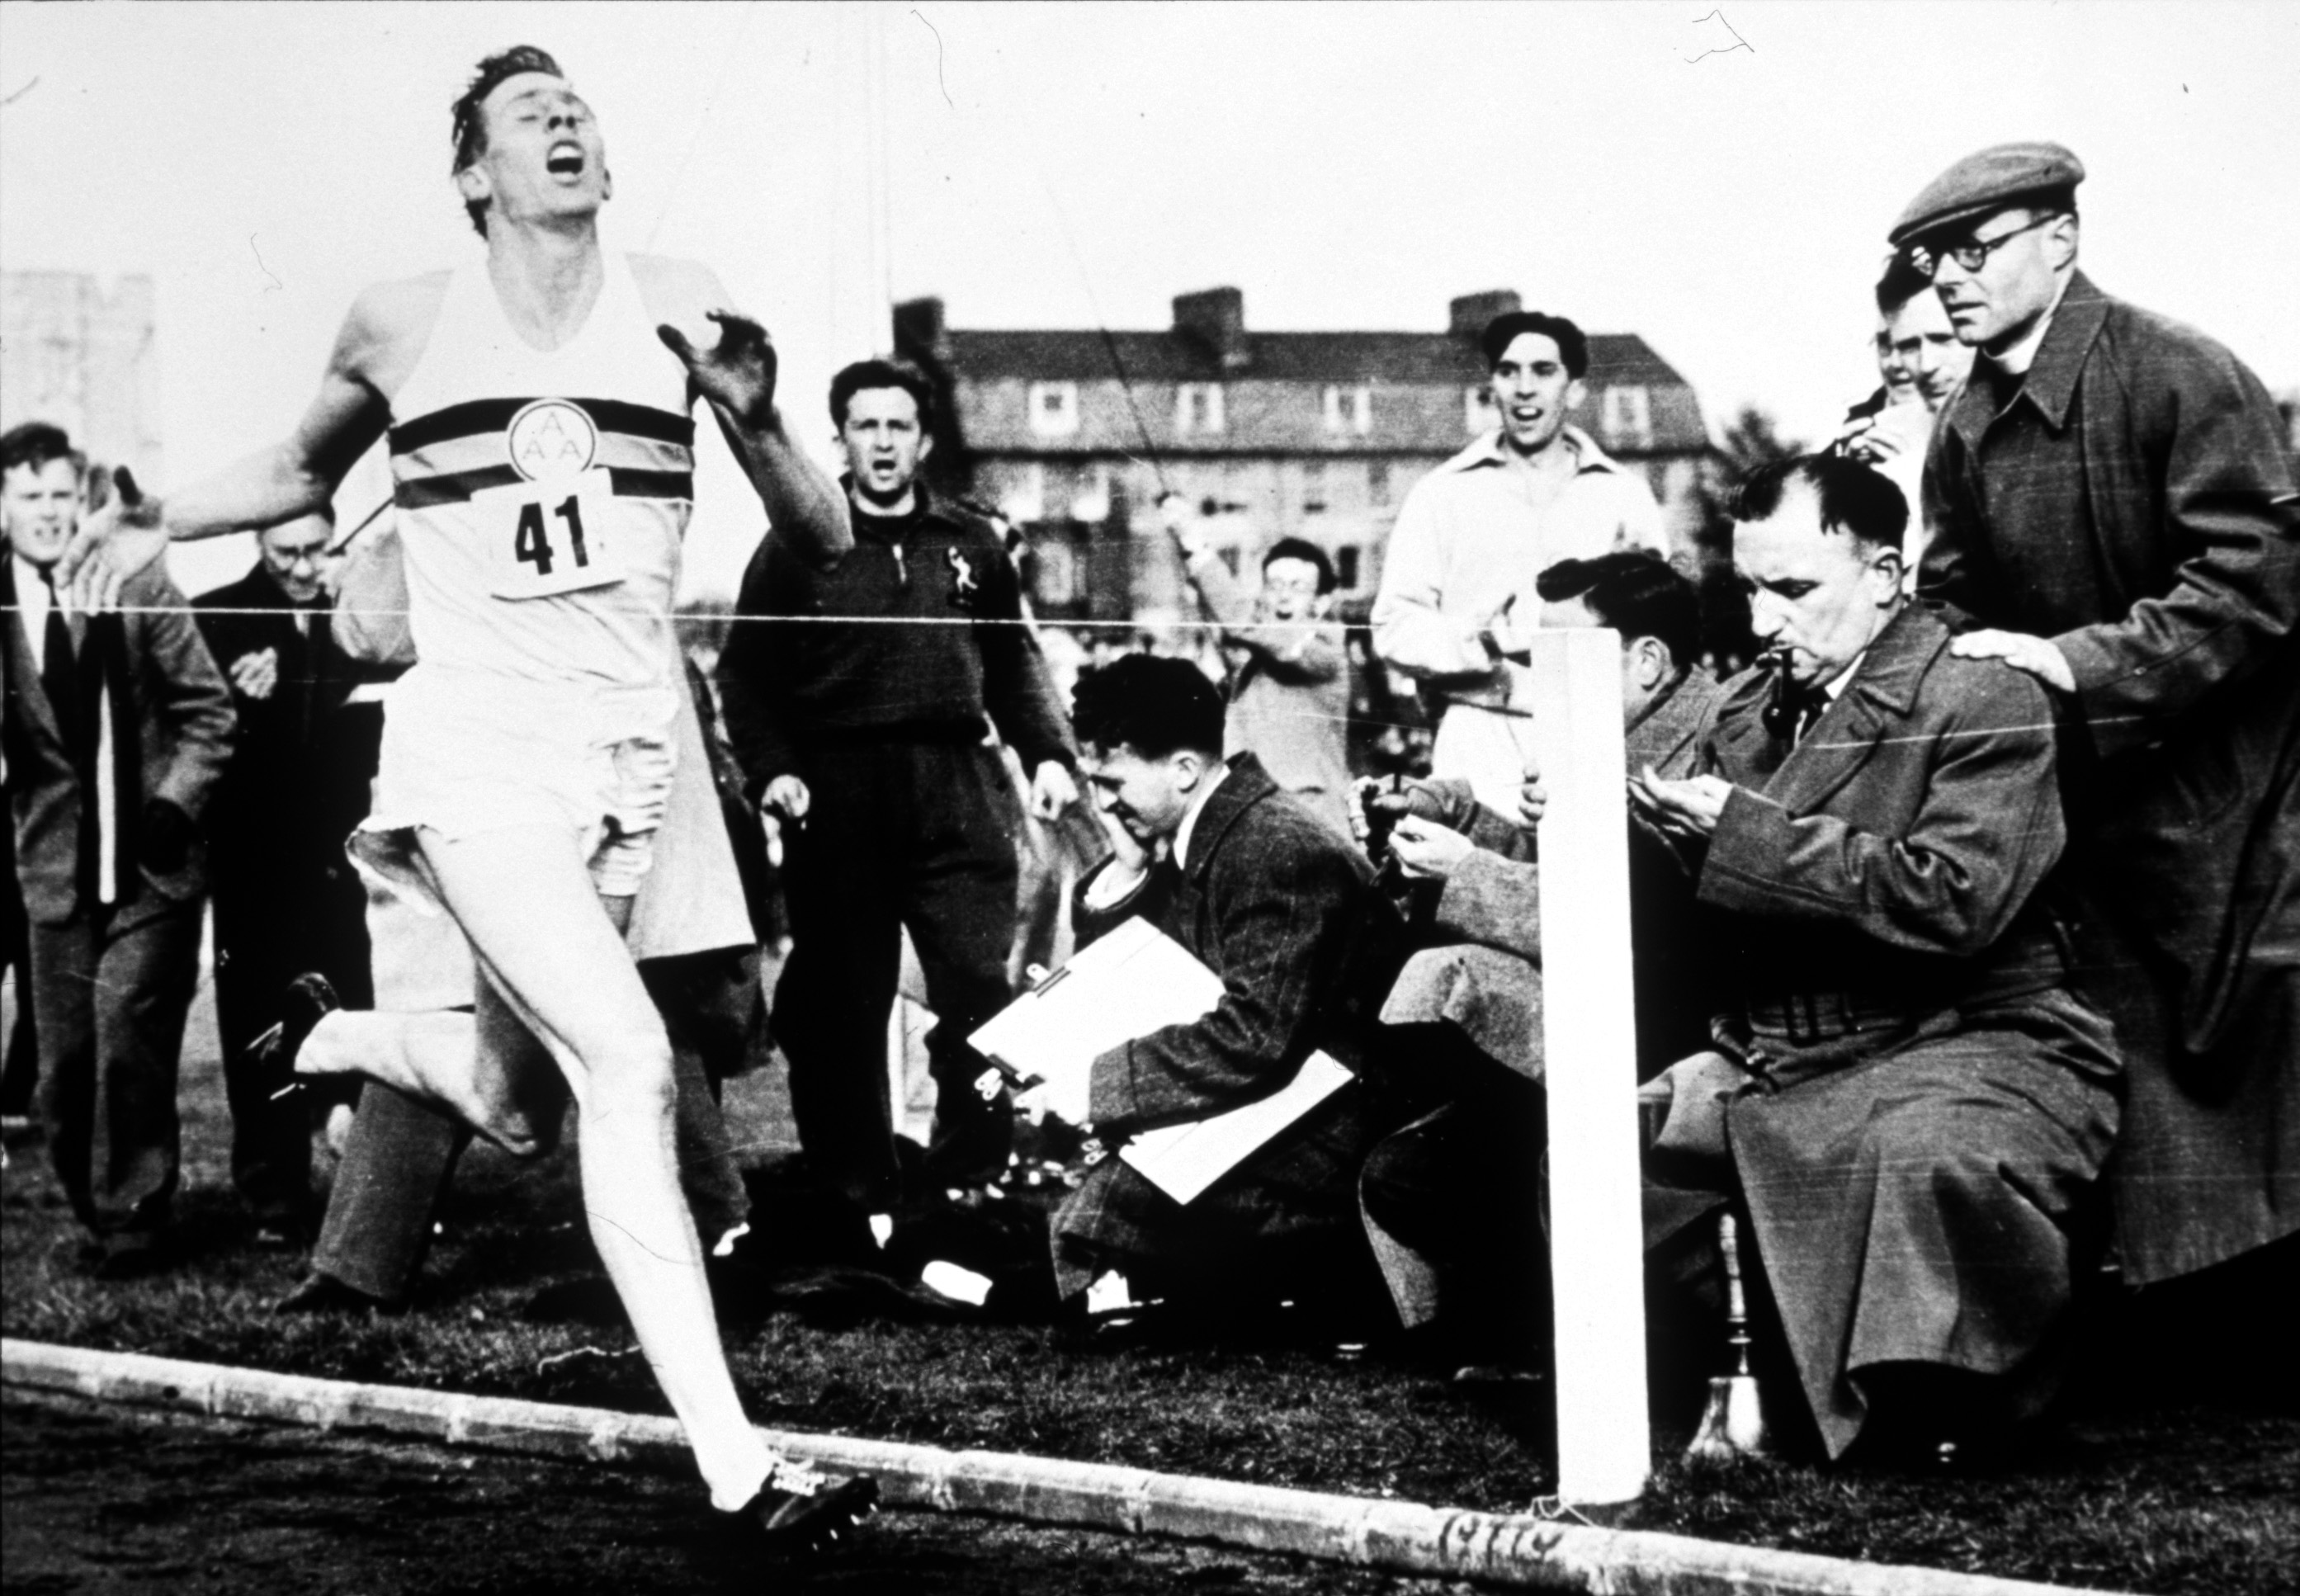 In 1954 it was thought that the four minute mile was a physiologically impossible barrier and that a runners legs would fall off